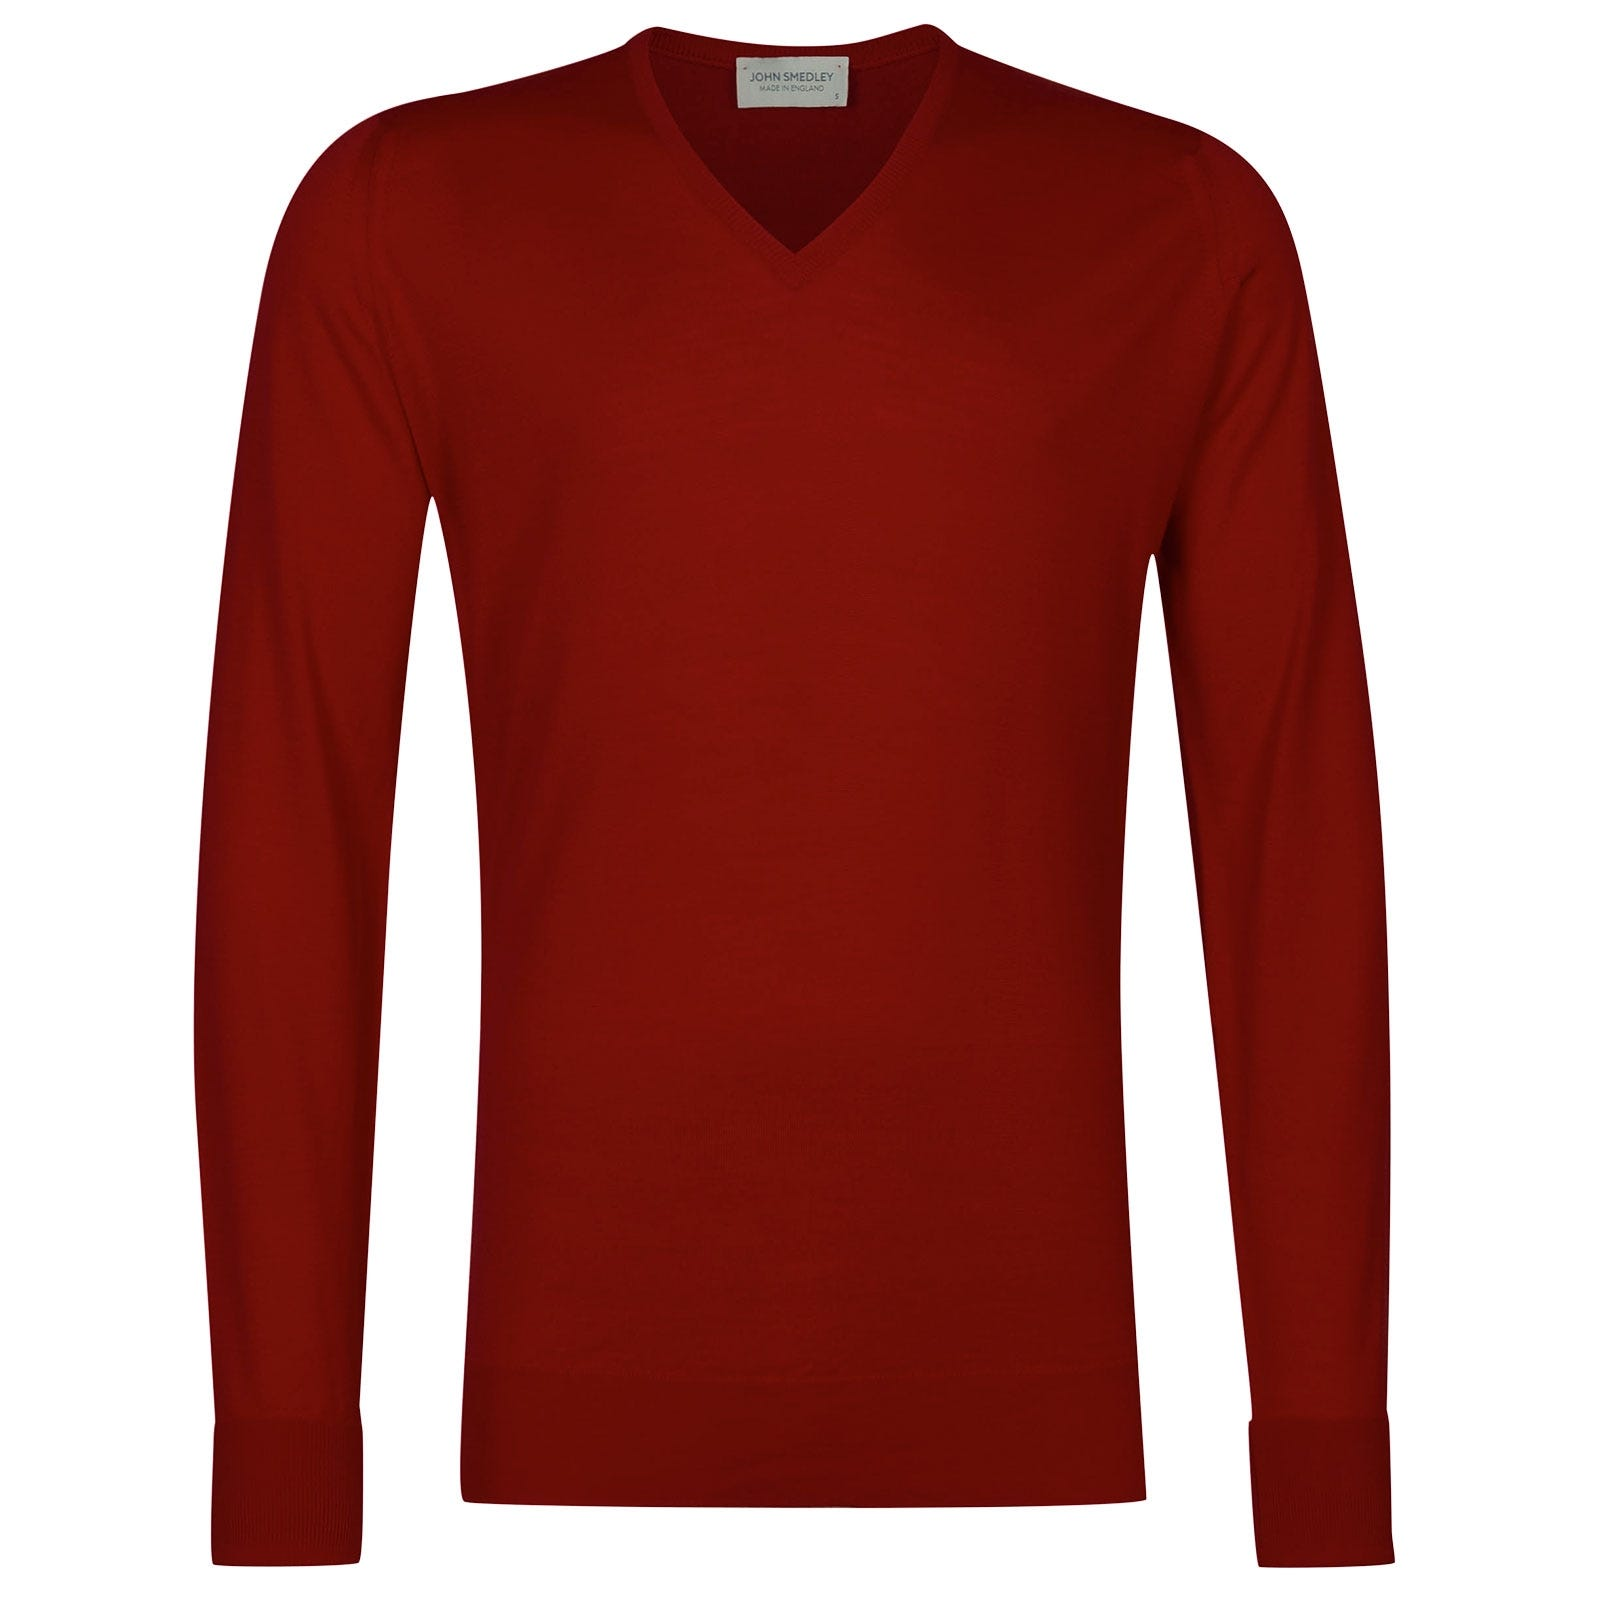 John Smedley Bobby Merino Wool Pullover in Thermal Red-M